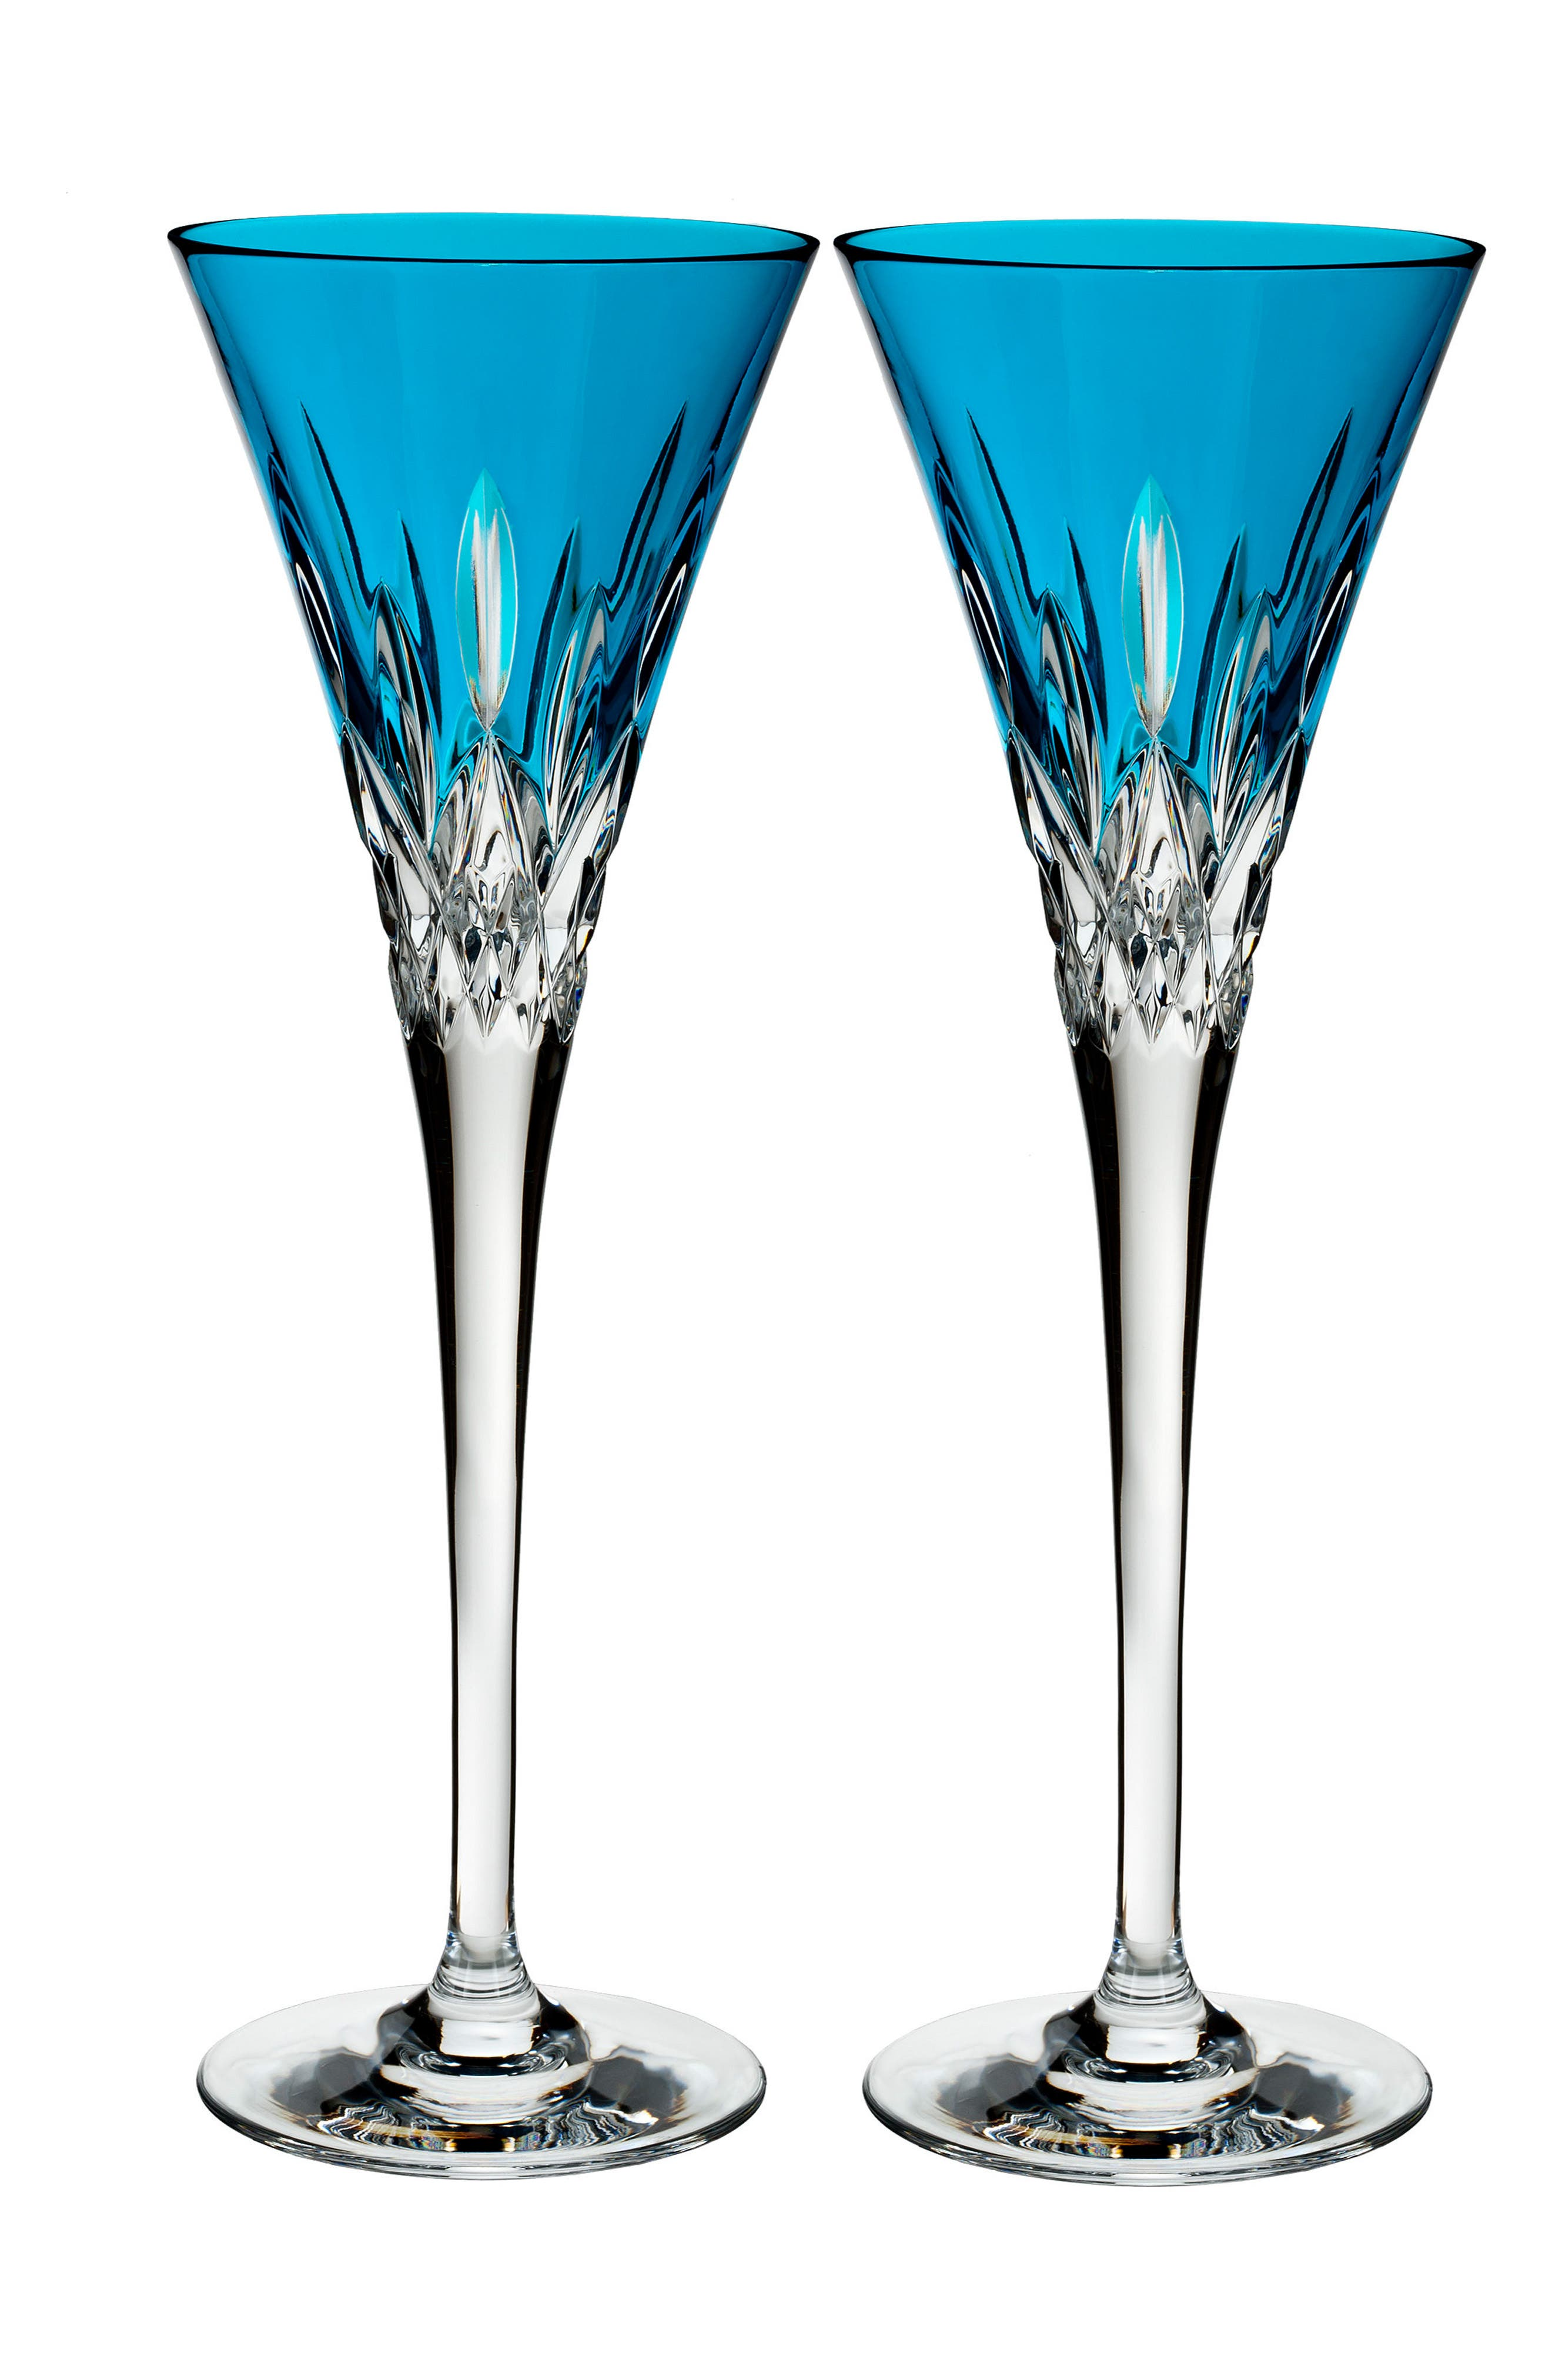 Main Image - Waterford Lismore Pops Set of 2 Aqua Lead Crystal Champagne Flutes